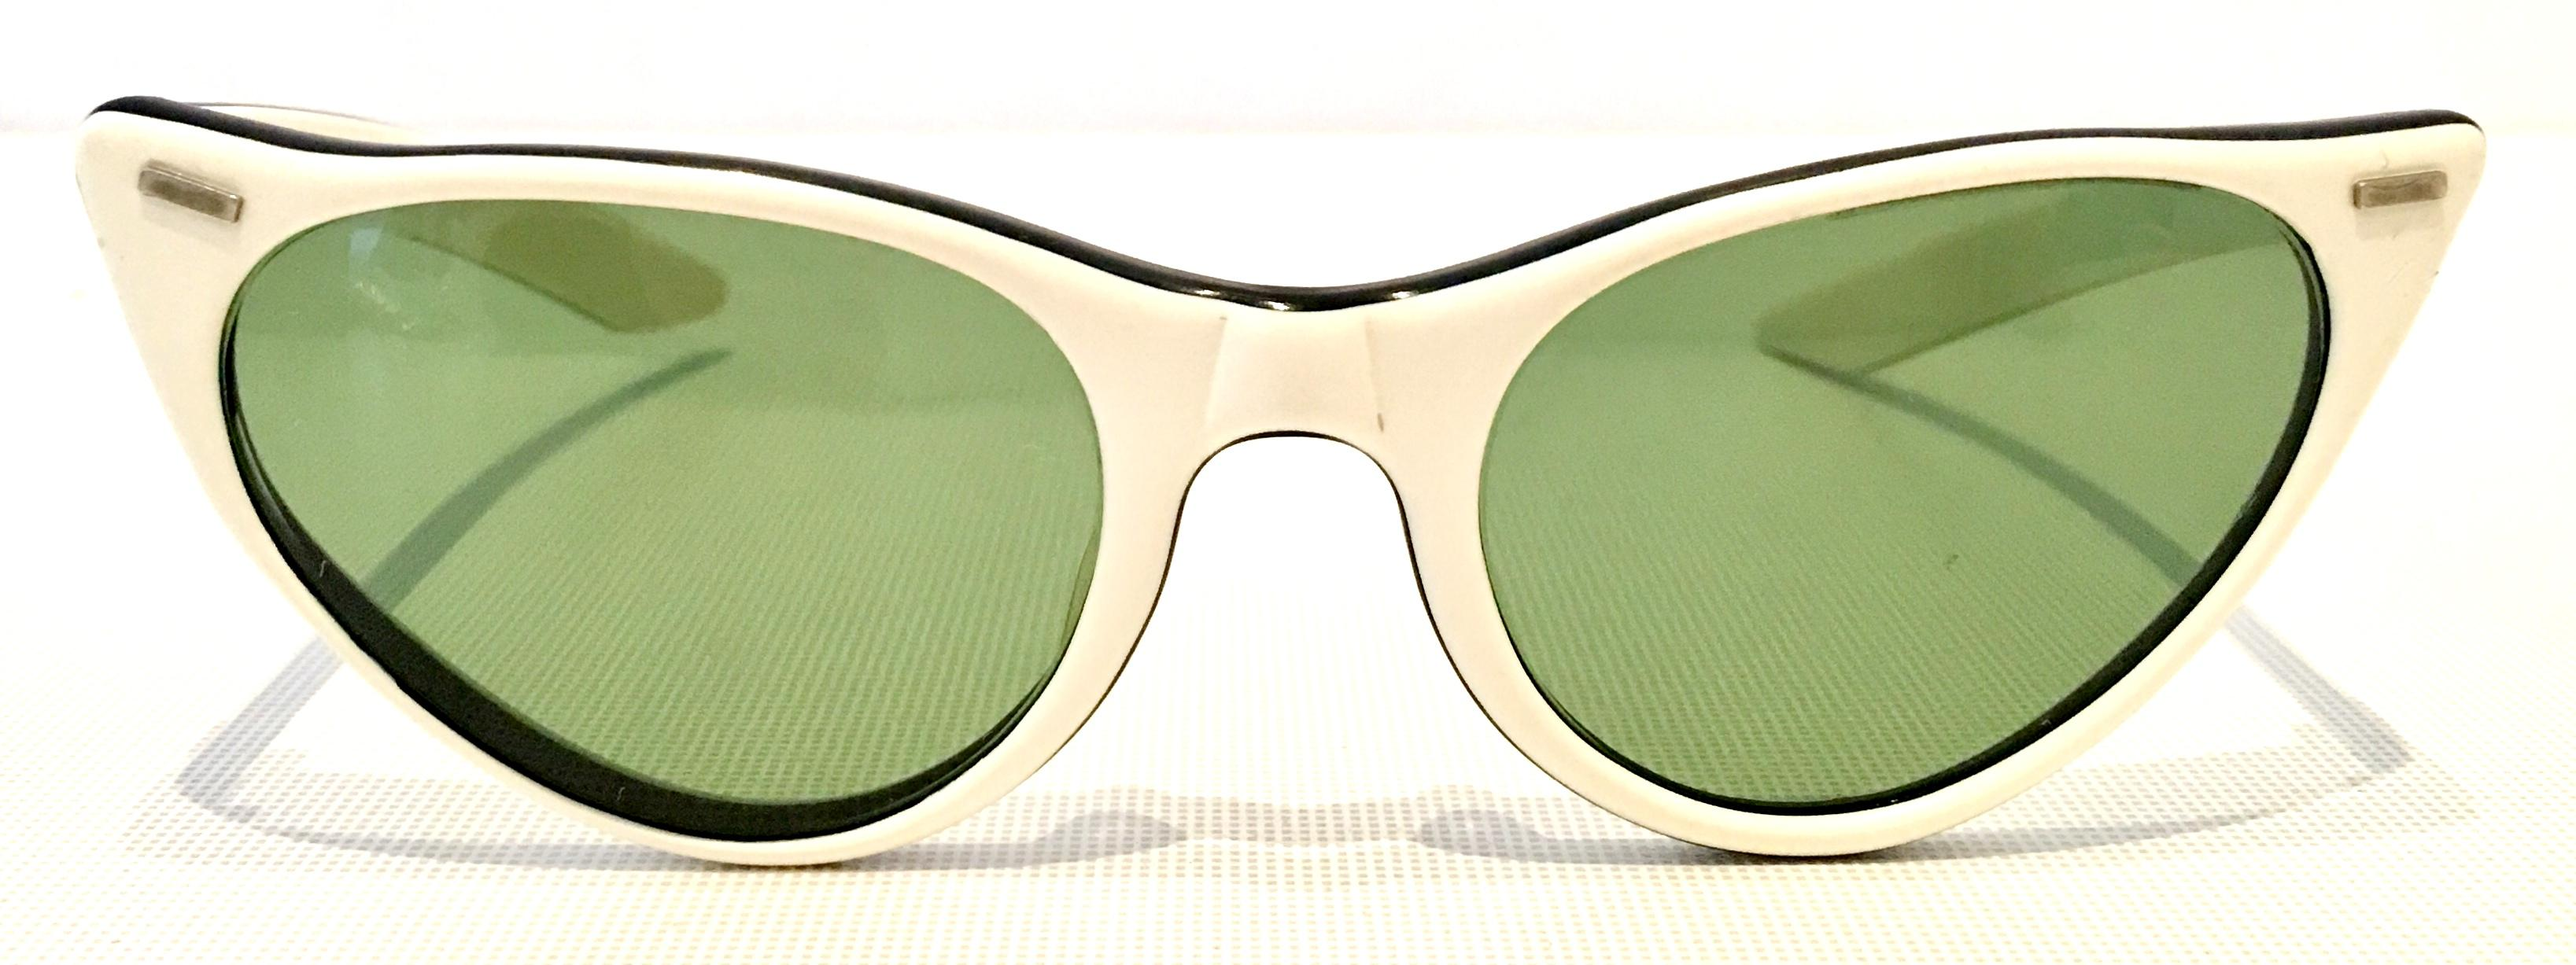 09b78f4dc6 50 S Ray Ban Style Authentic